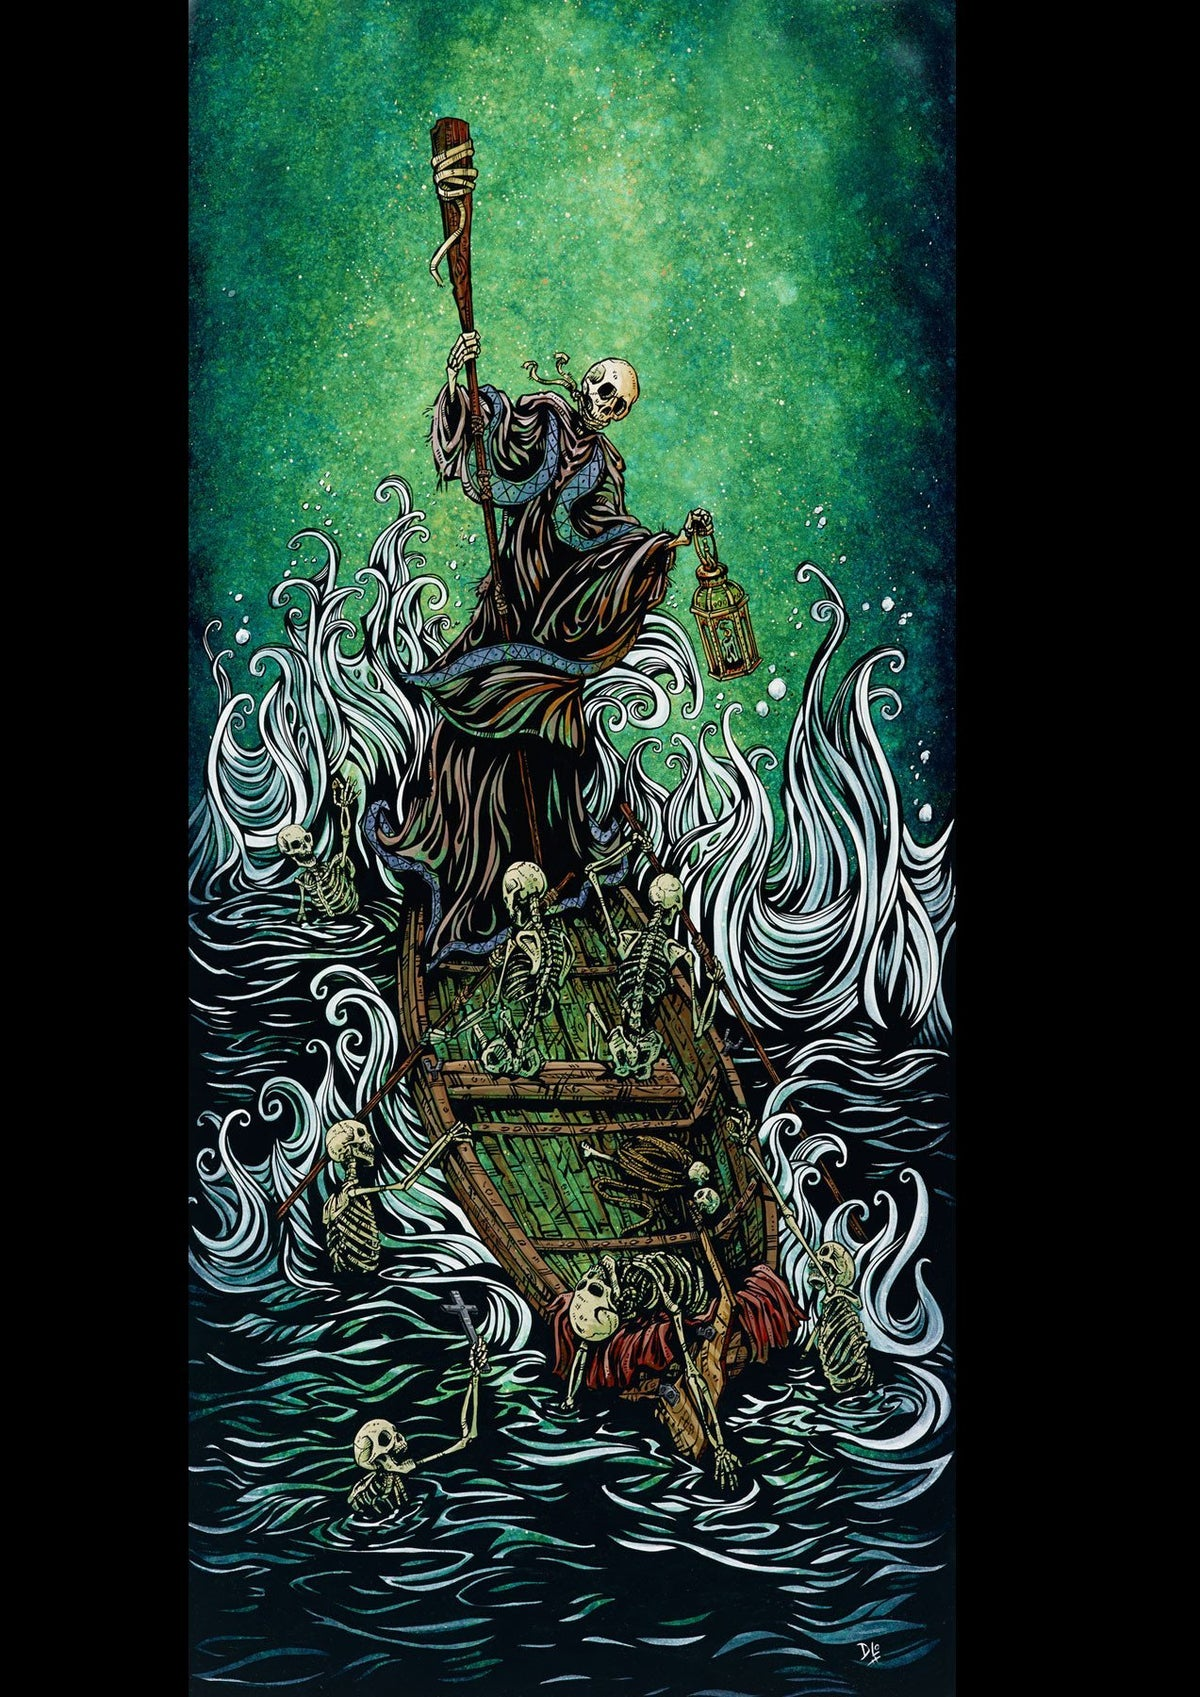 The Boatman on the River Styx by Day of the Dead Artist David Lozeau, Dia de los Muertos, Muertos, Sugar Skull